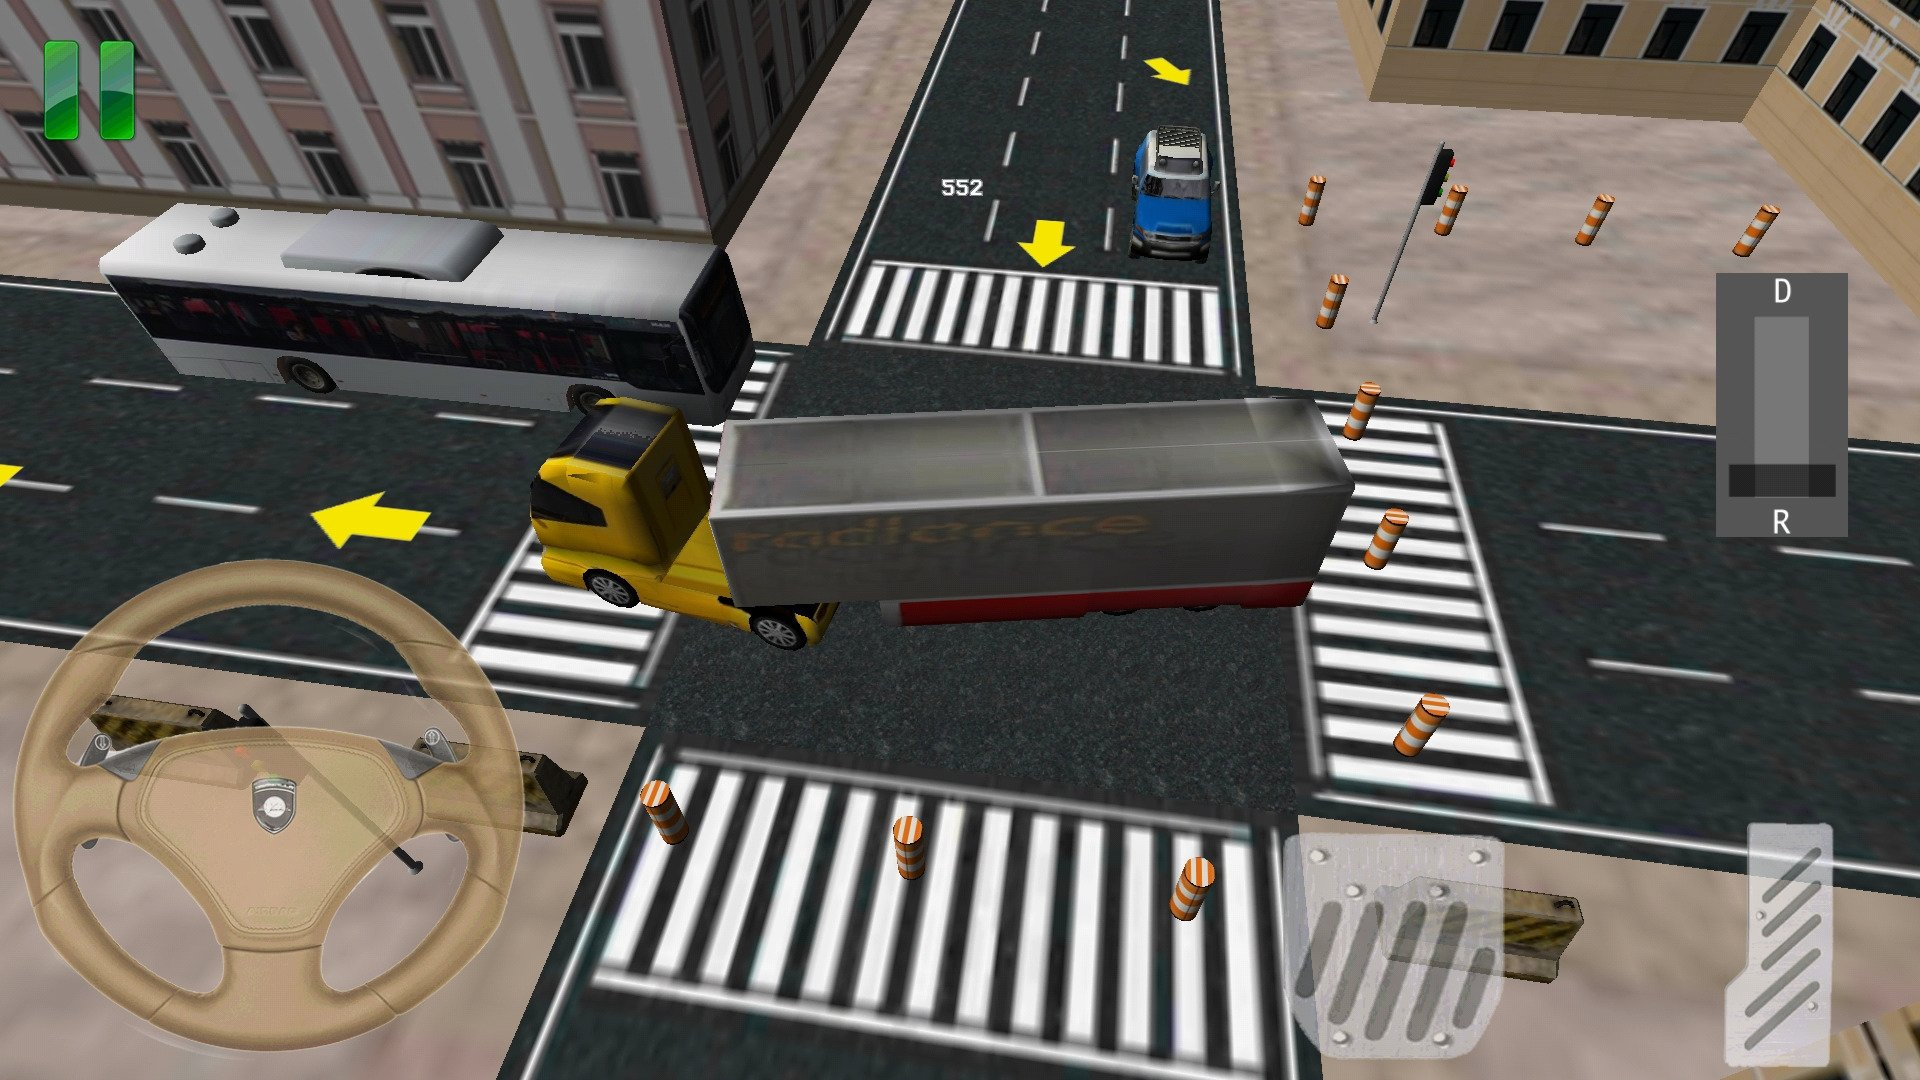 Truck Parking 3D Android image 5